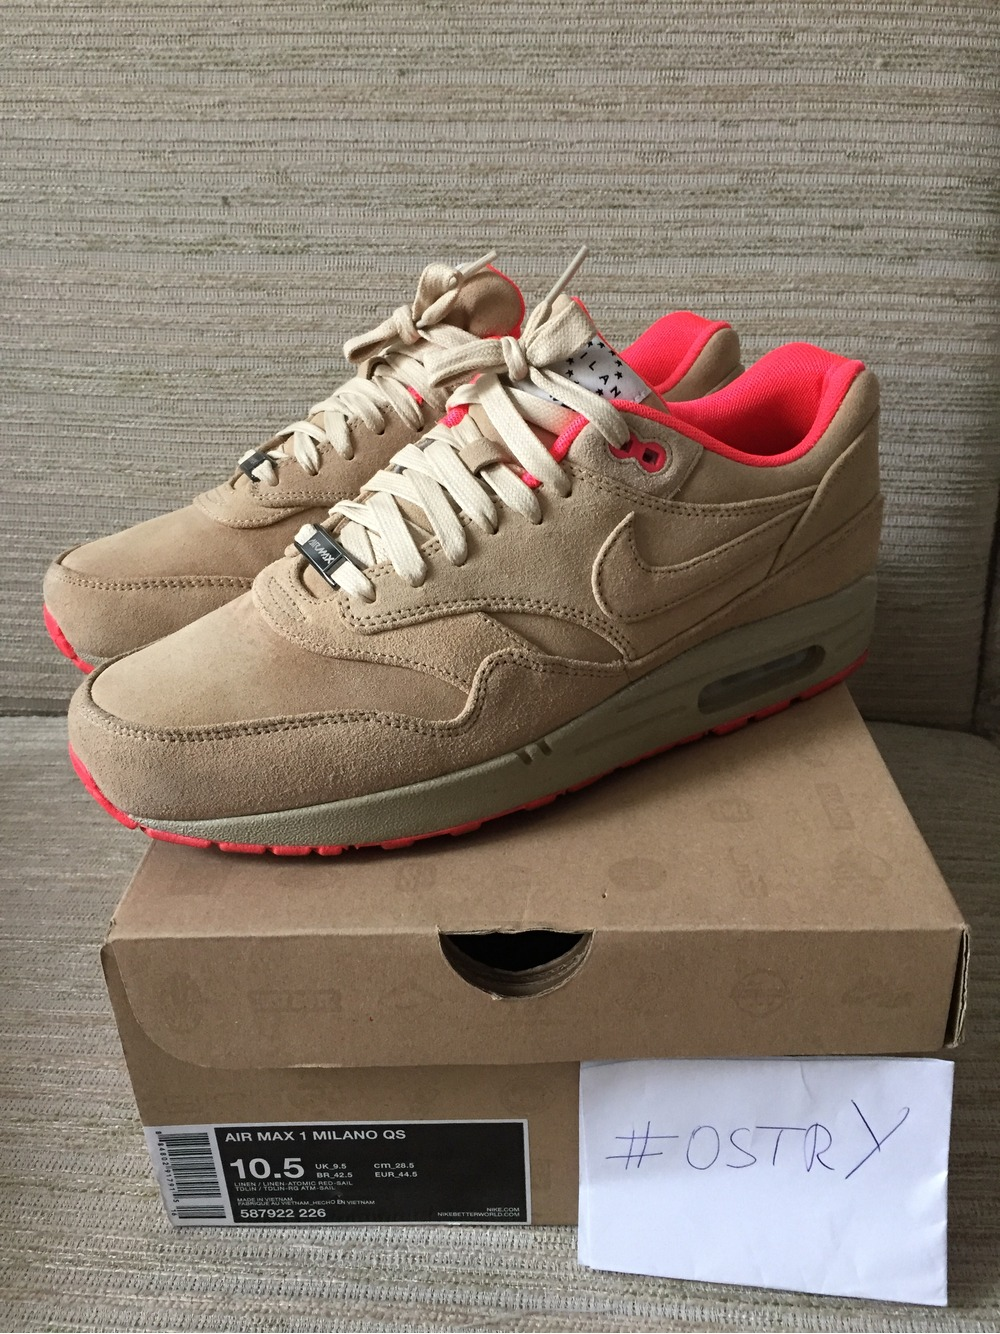 aliexpress new images of sale retailer air max 1 milano for sale